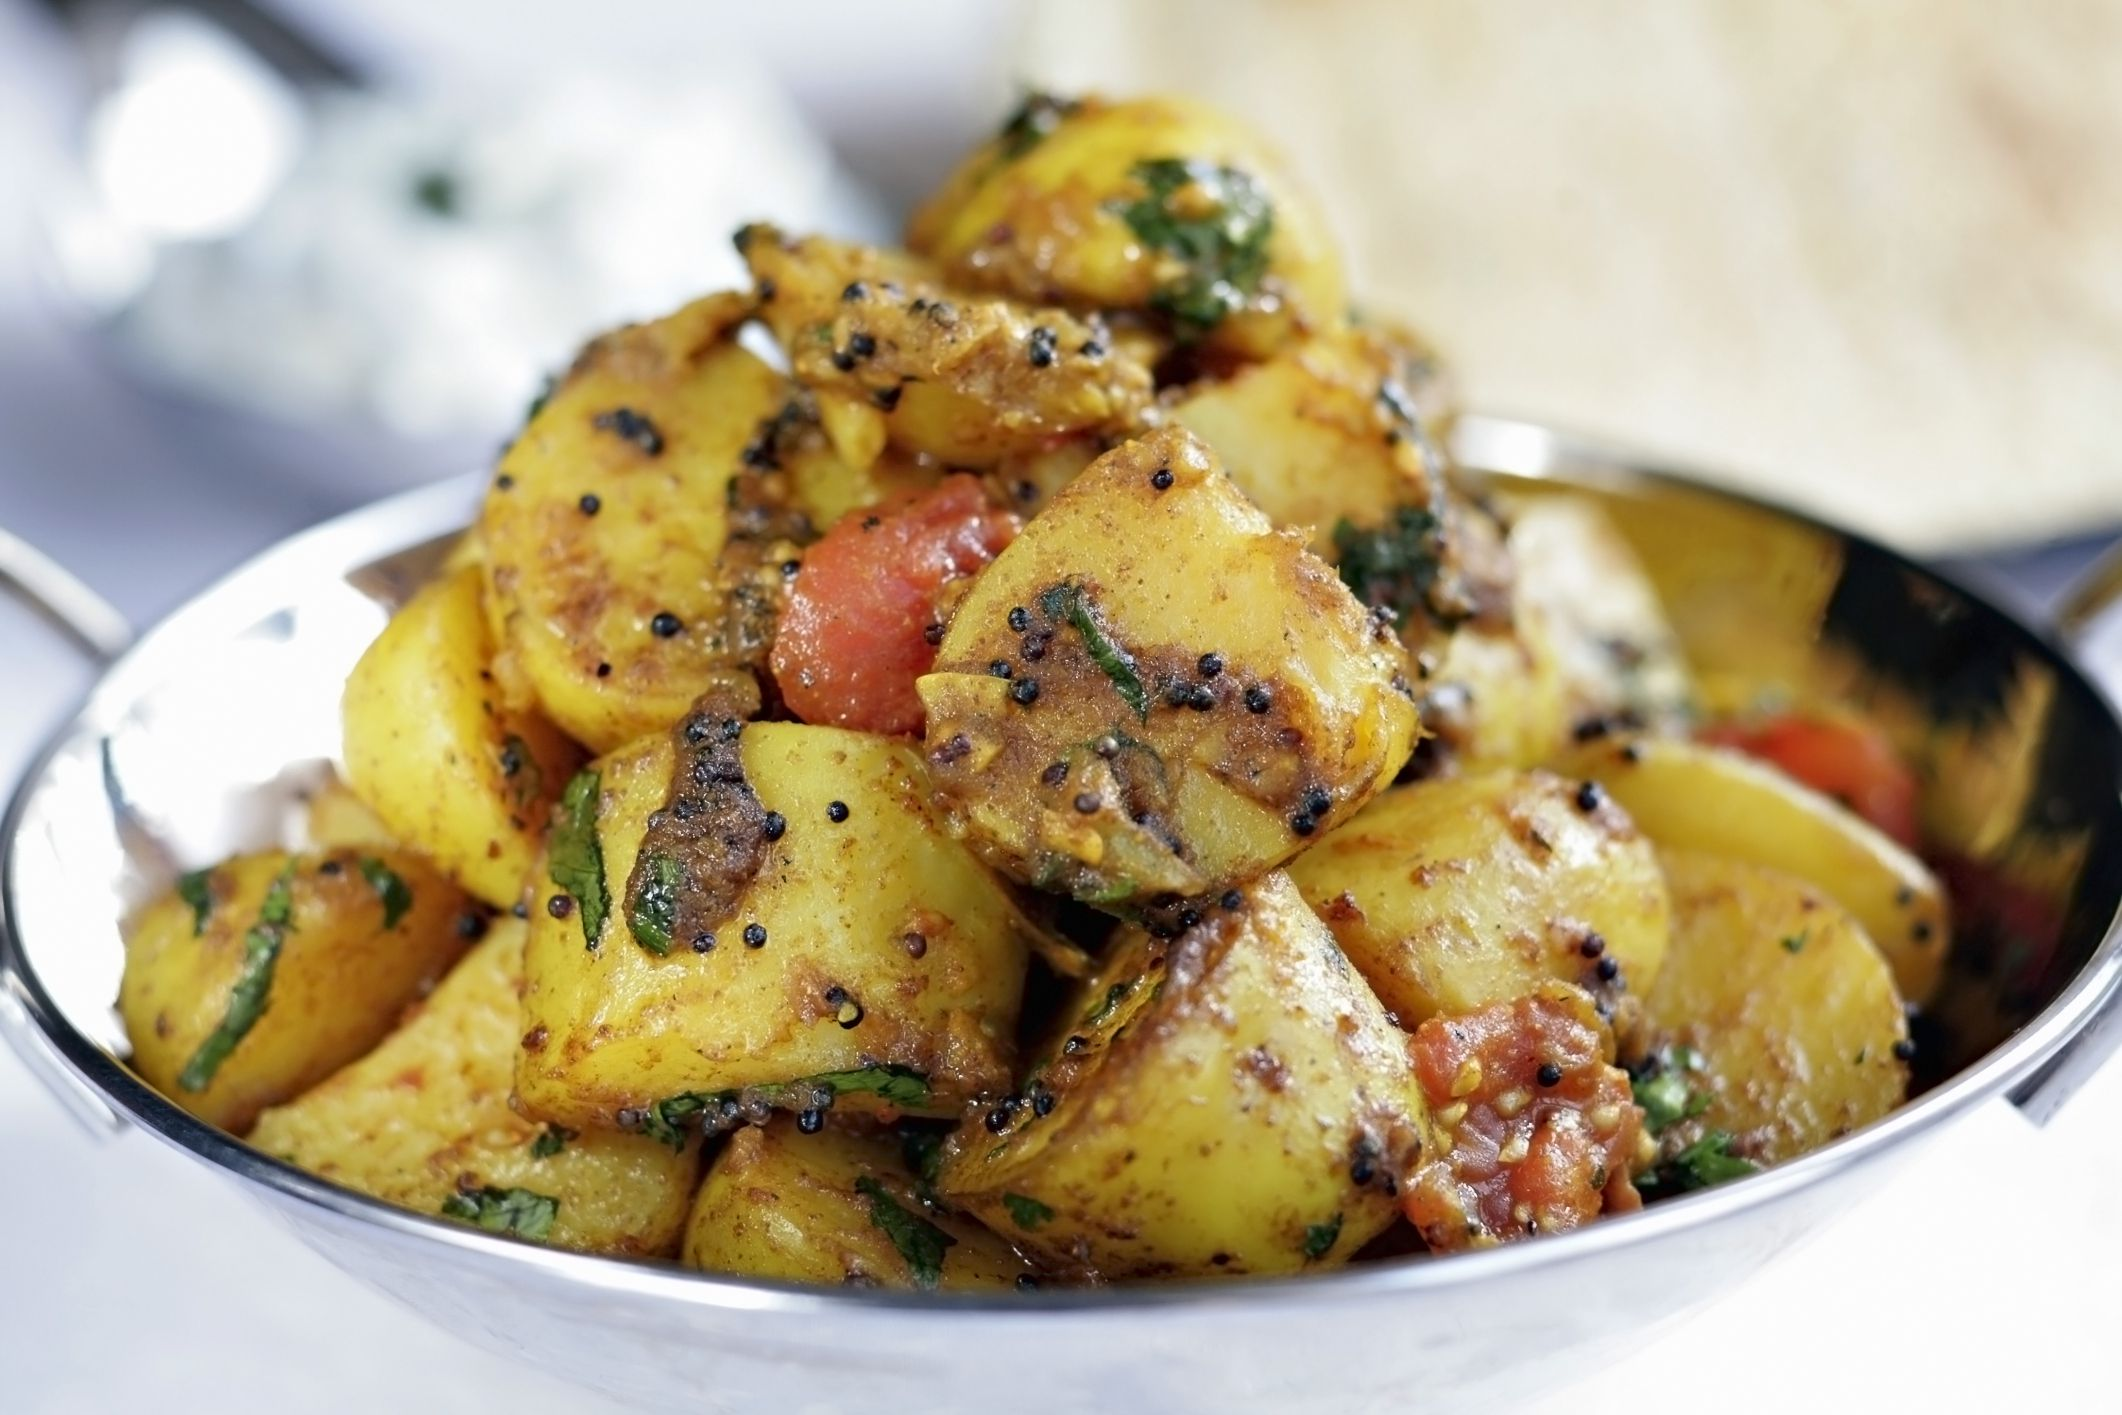 Spicy Indian Bombay Potatoes with Chilies